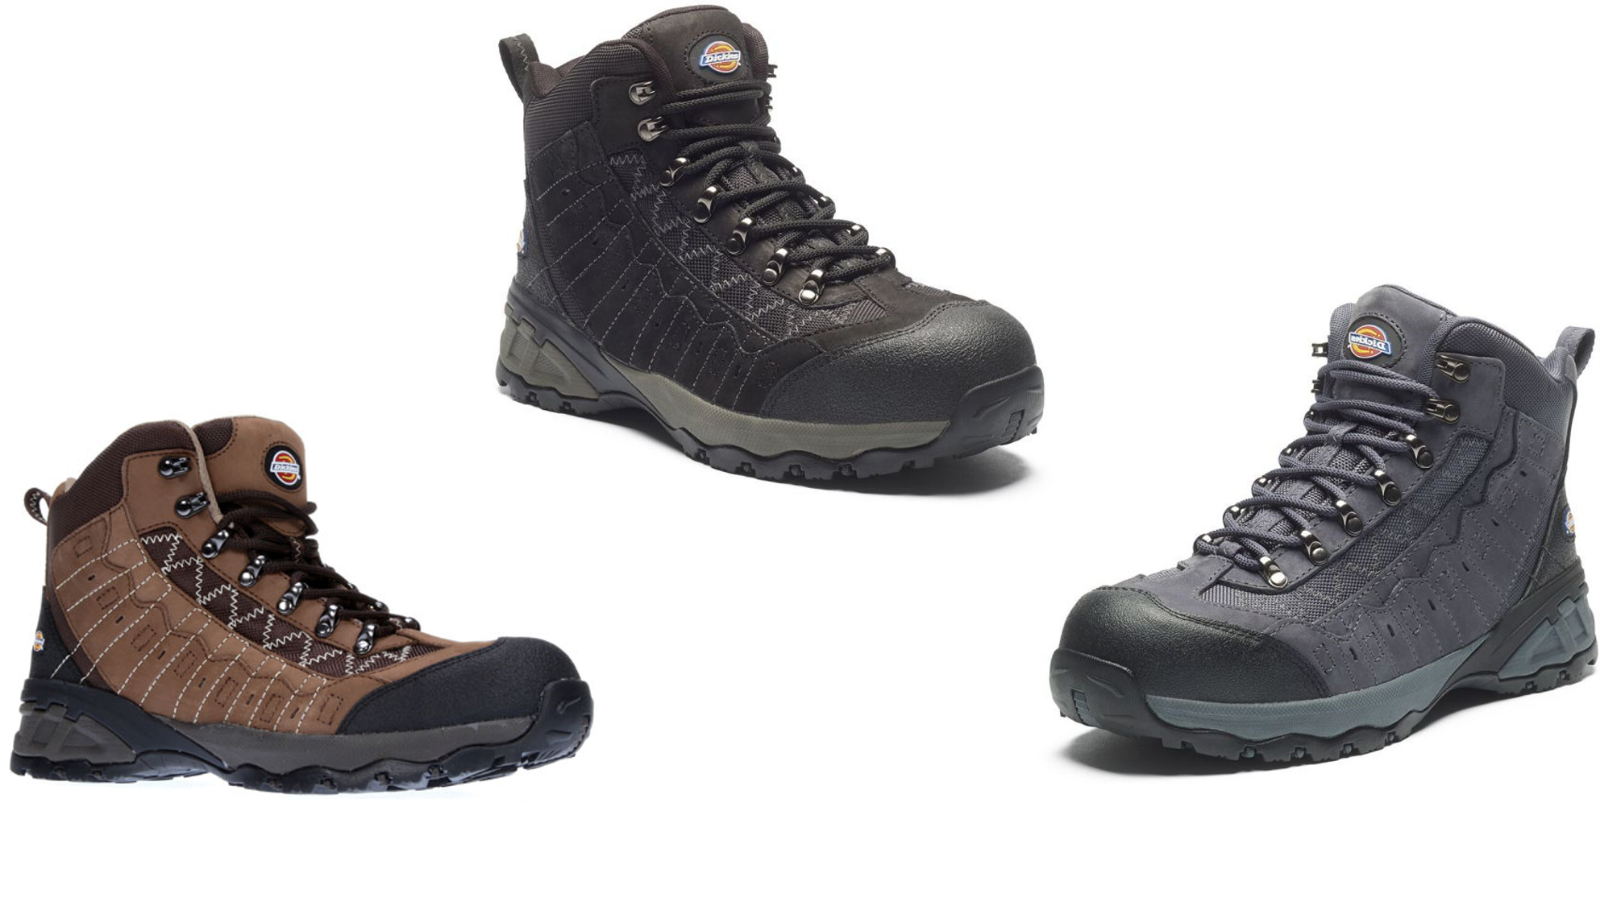 Men/'s Shoes Sizes 6-12 Dickies Gironde Safety Work Boots Black